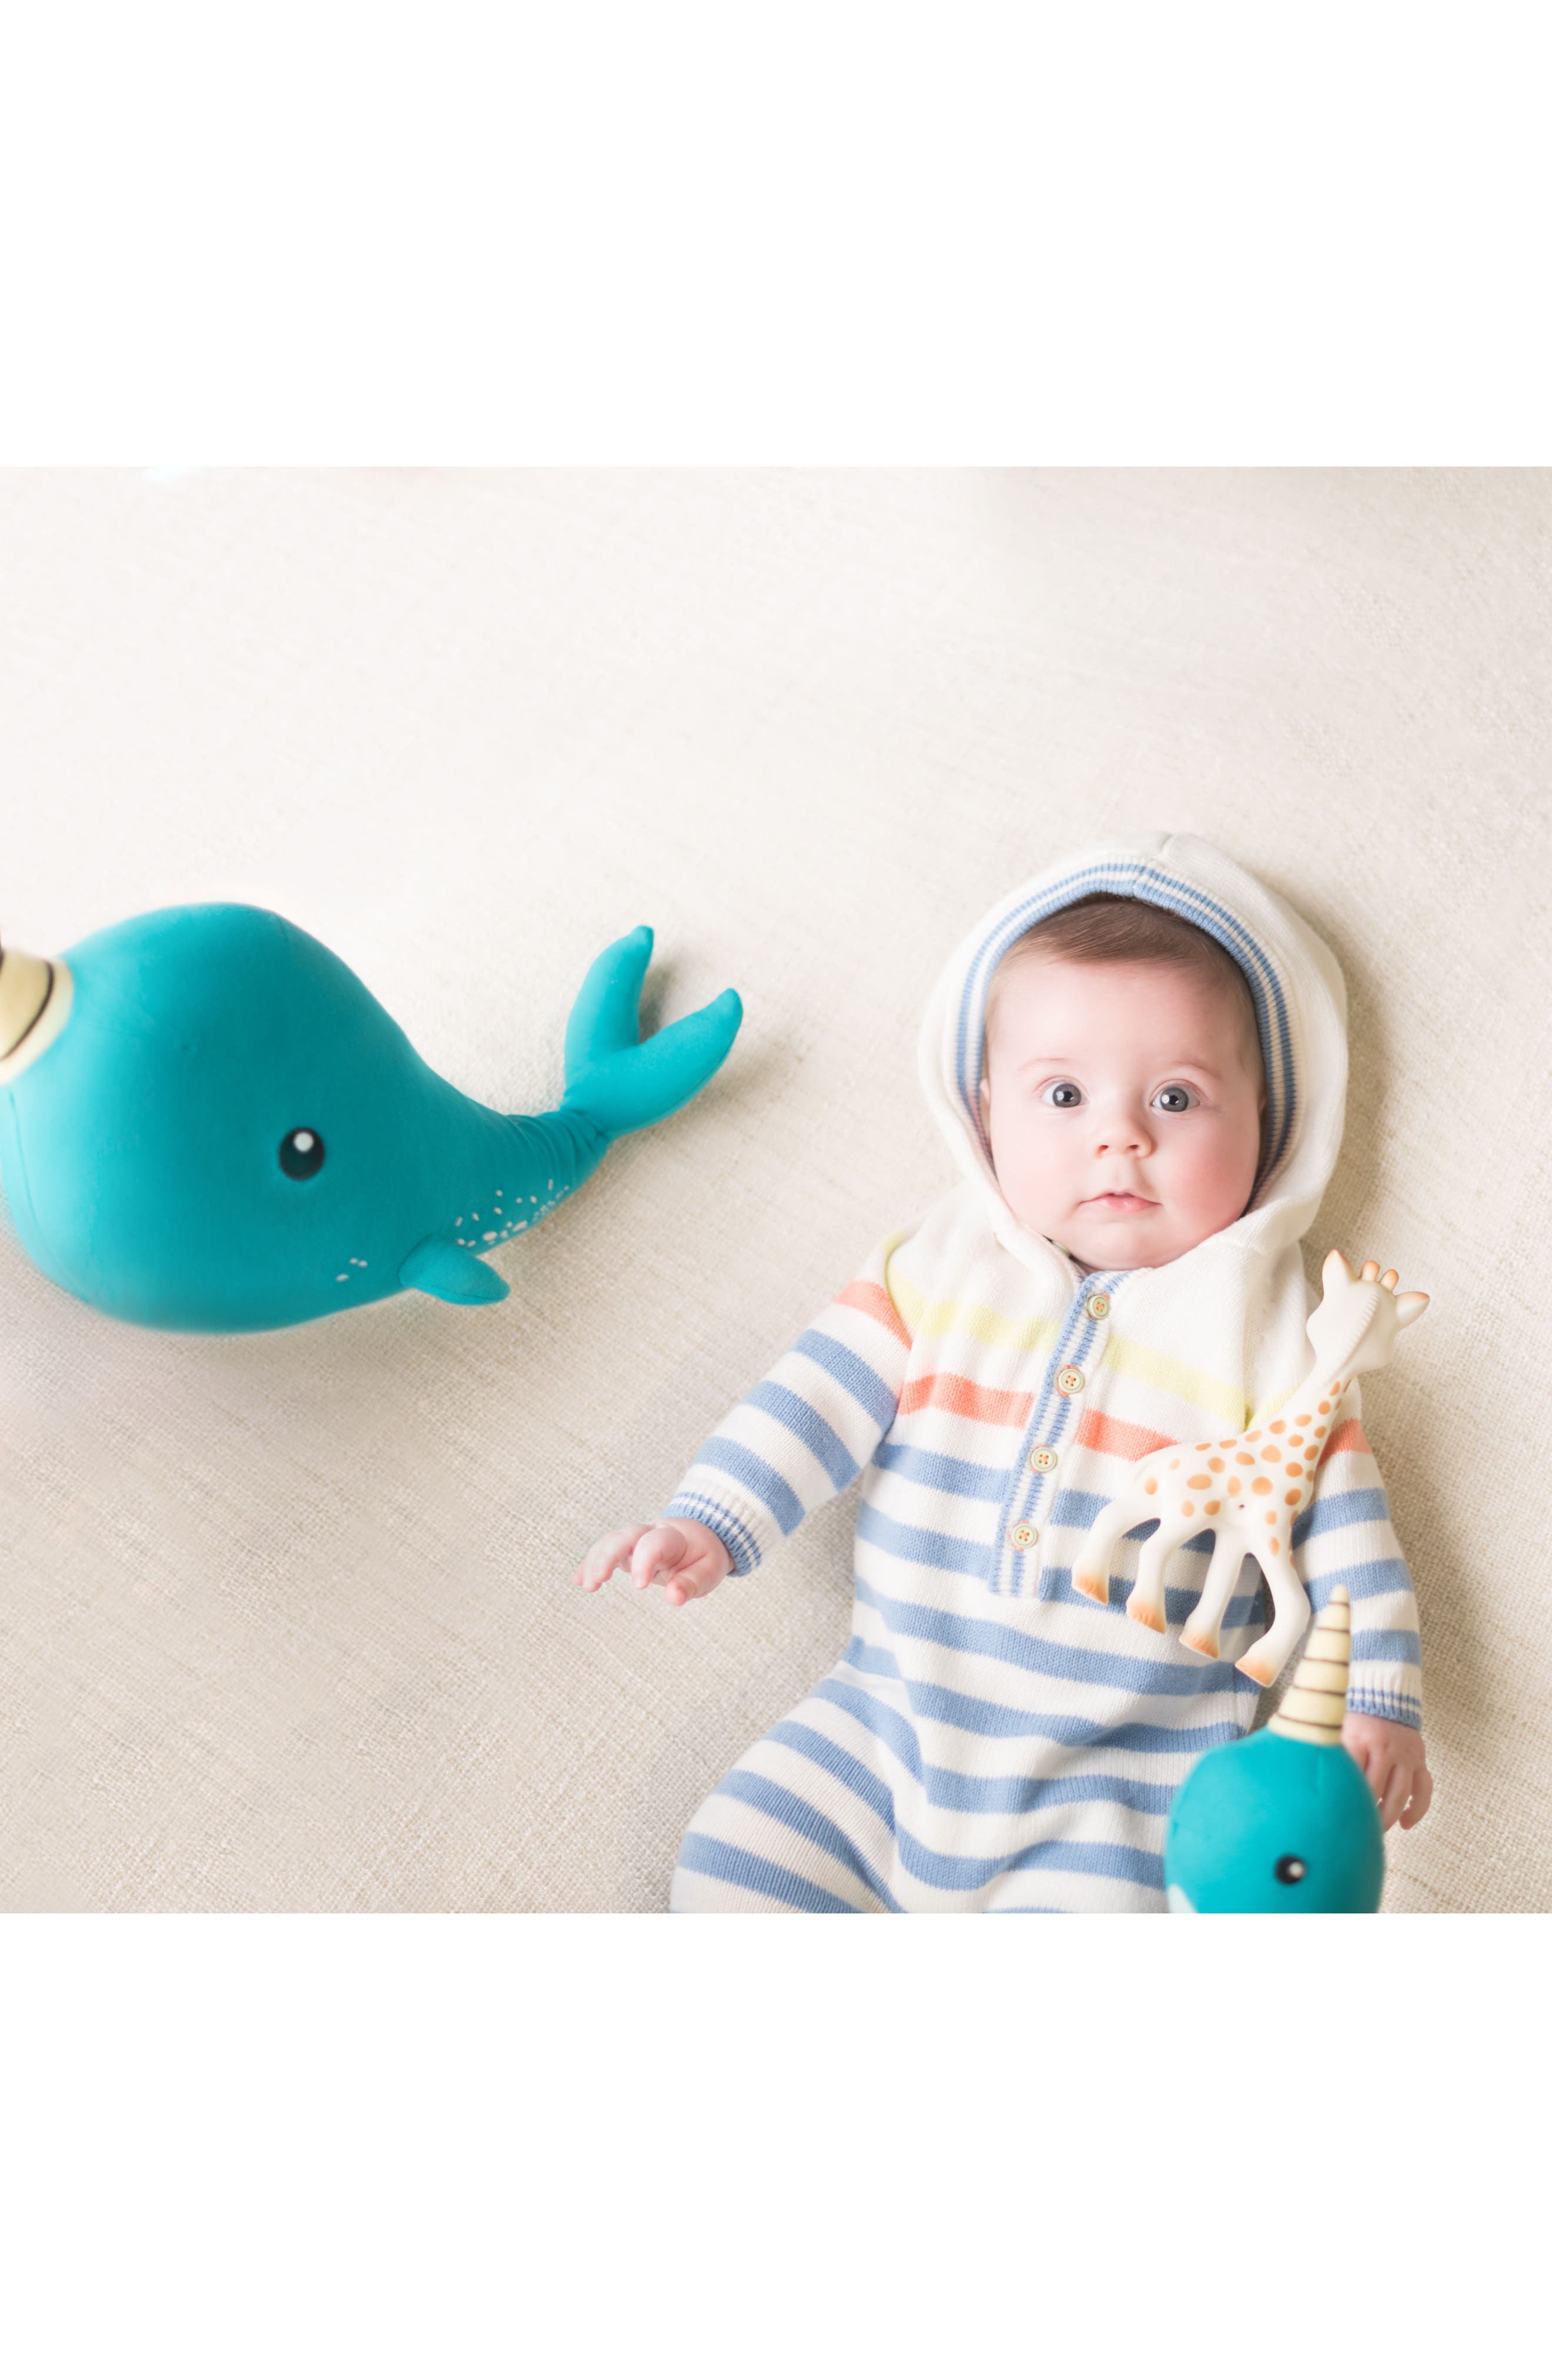 Small Norman Narwhal Stuffed Animal,                             Alternate thumbnail 7, color,                             Blue